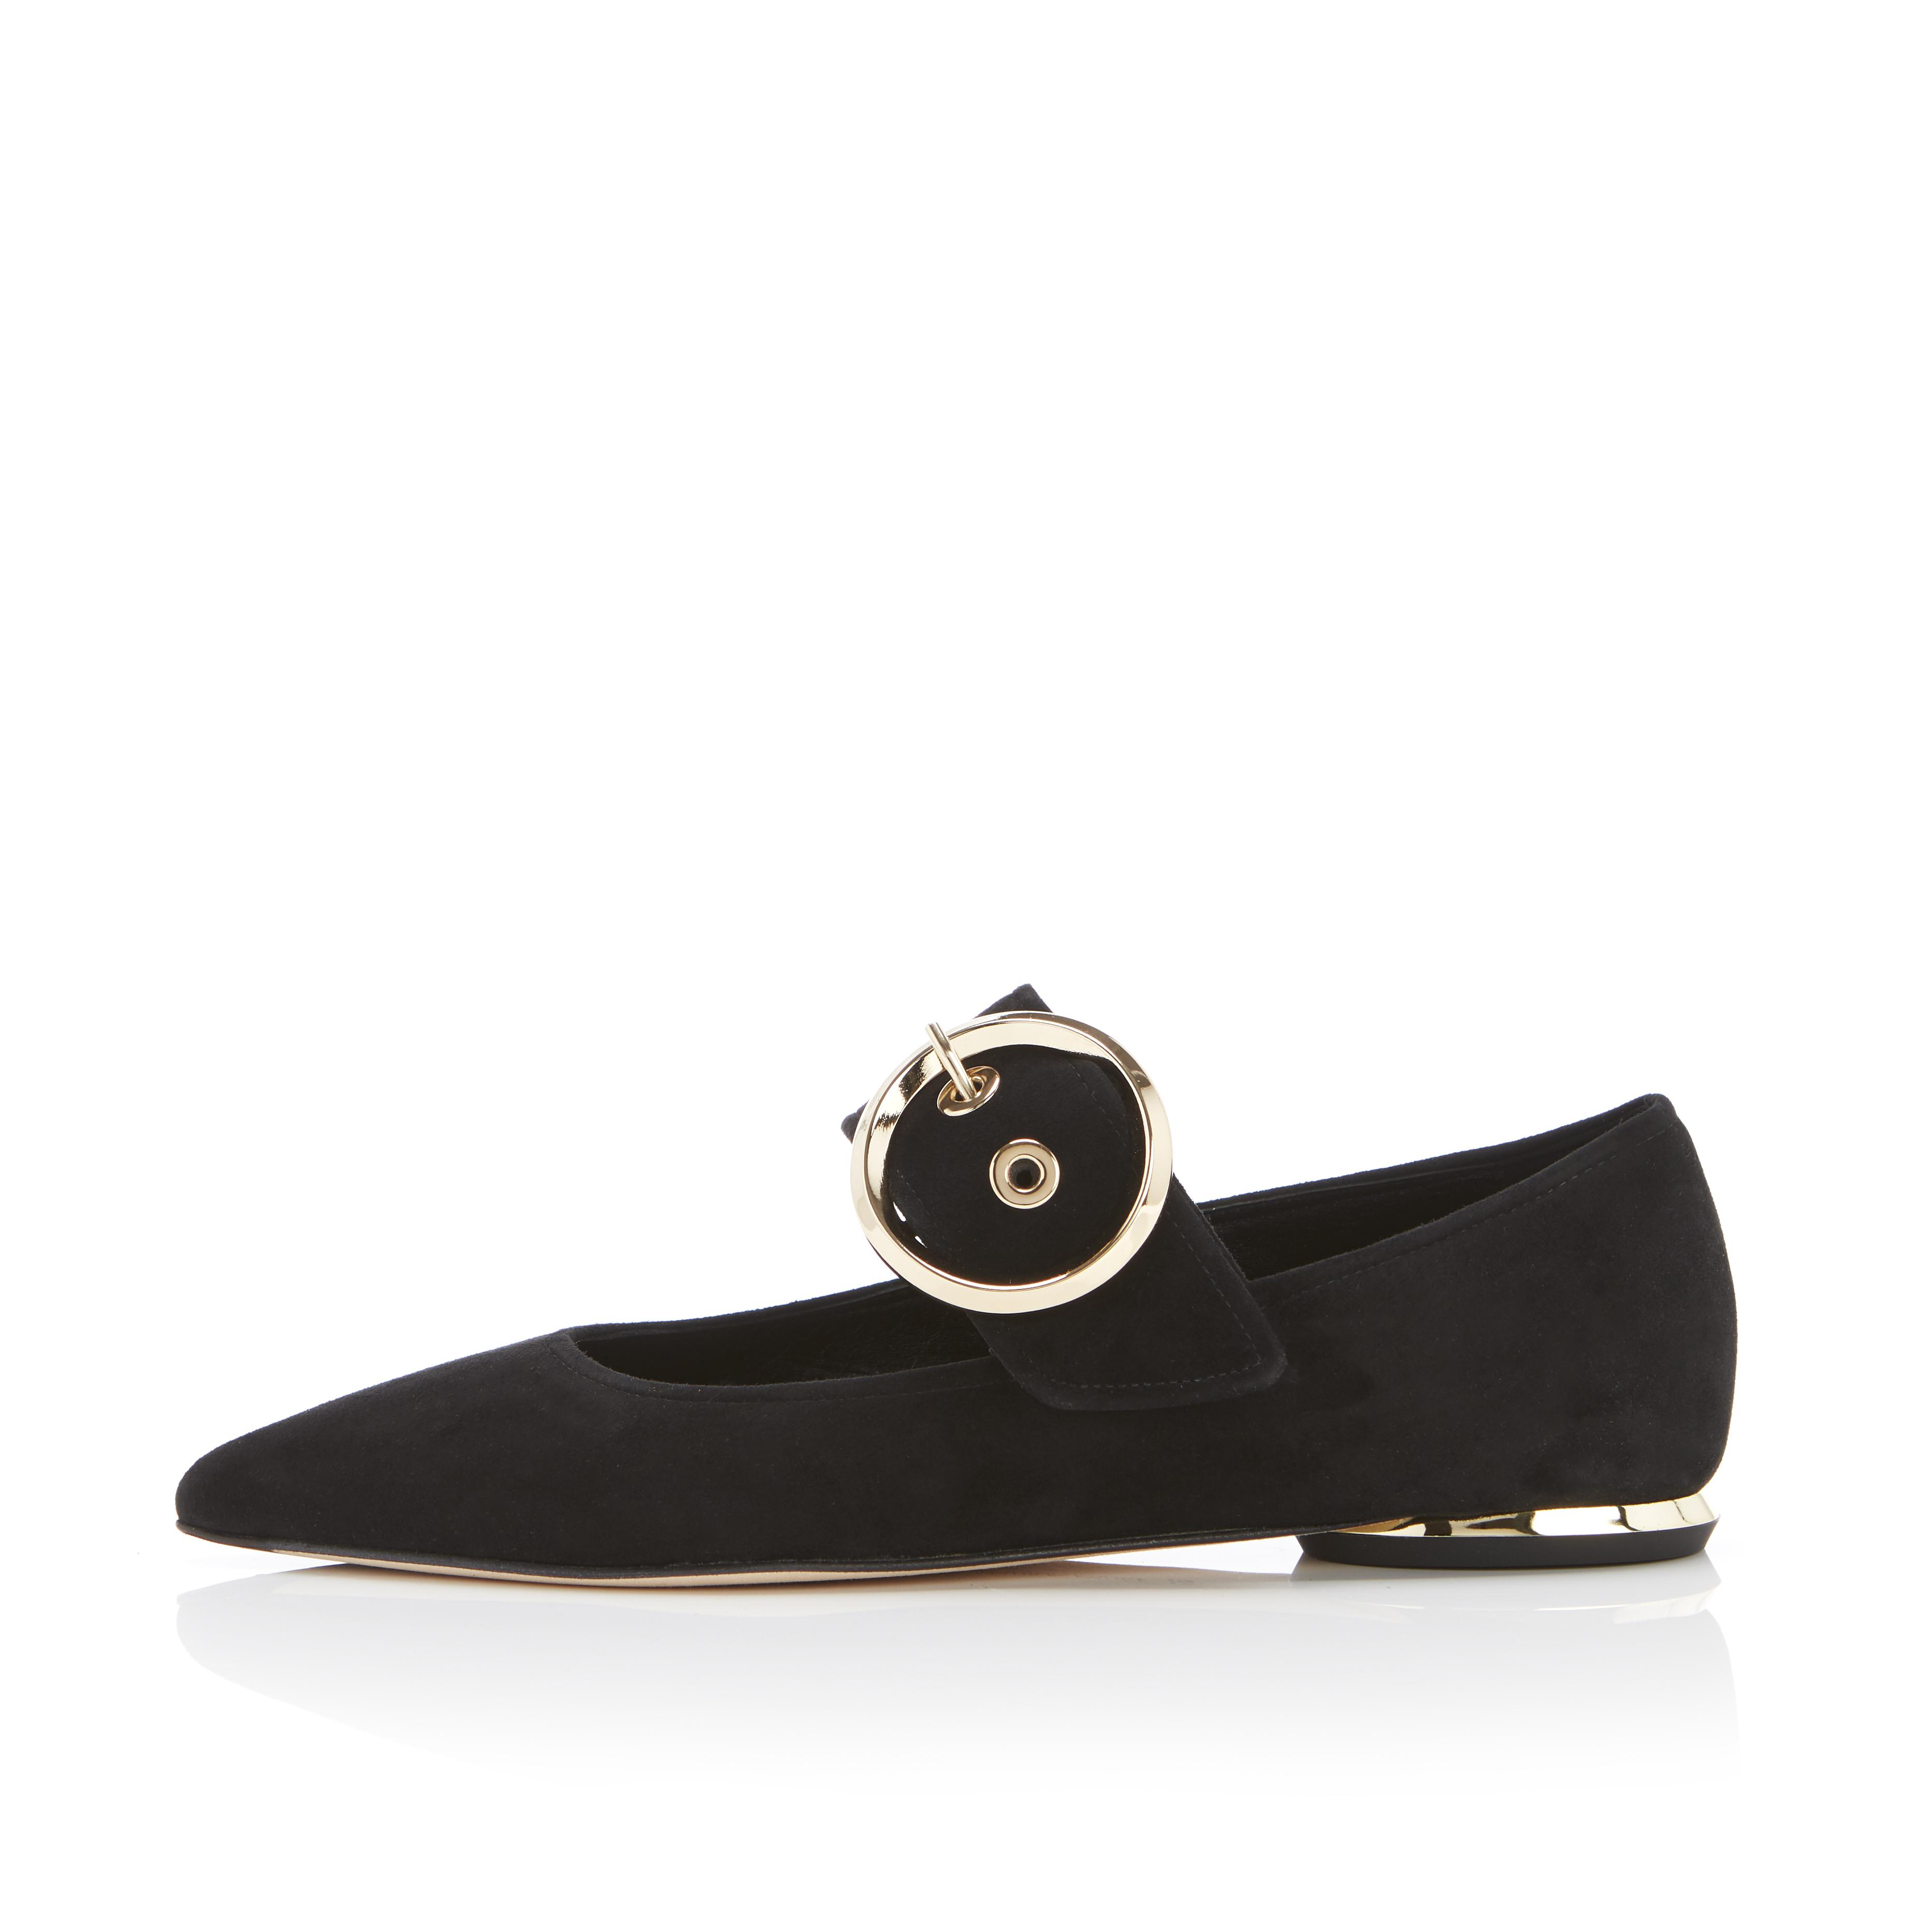 Nina | Suede Pointy Toe Mary Jane Flat With Buckle